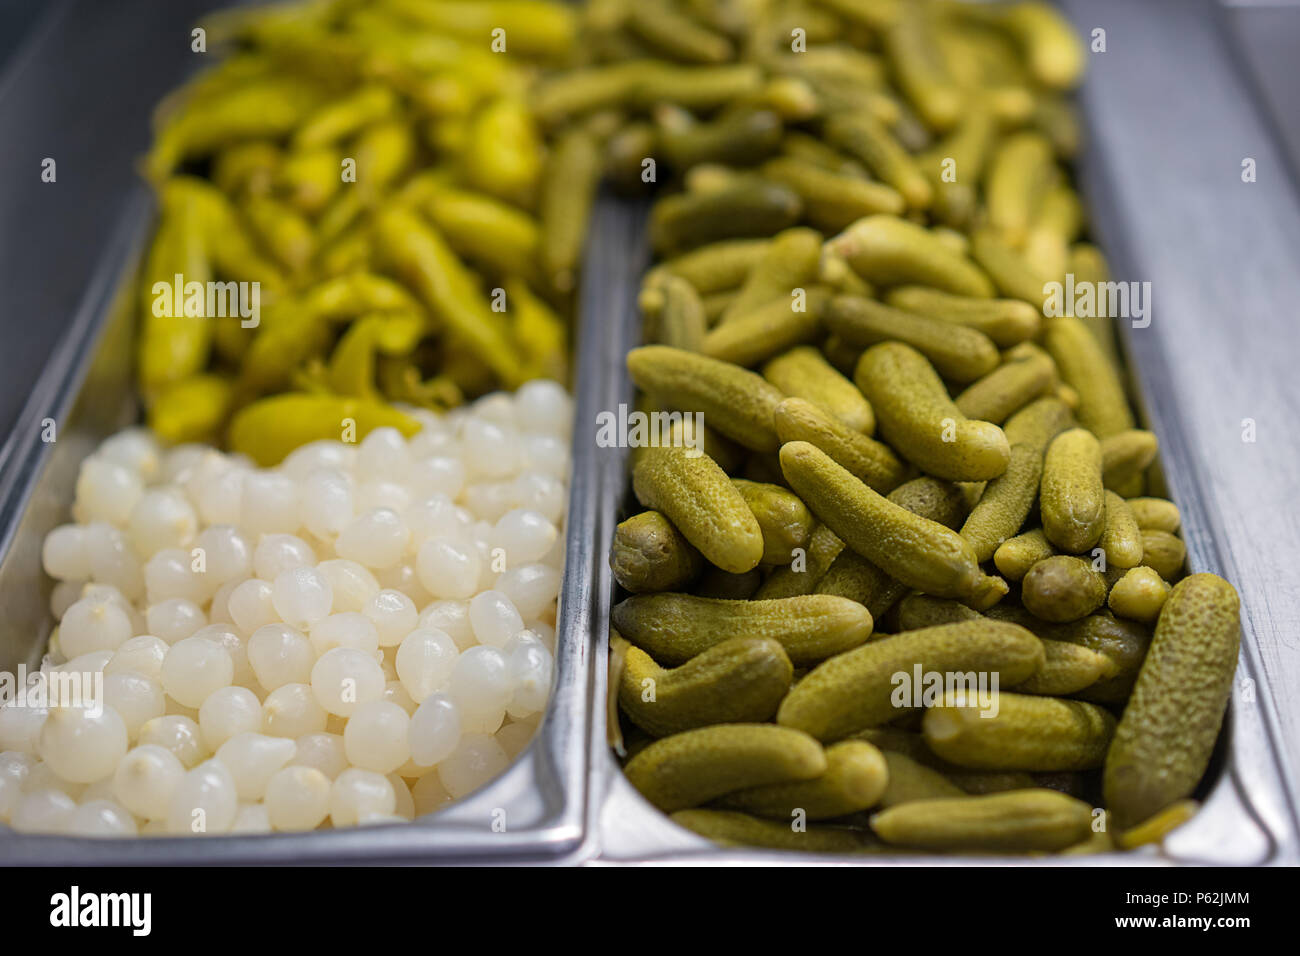 Pickles as background. Green pickle texture pattern. pickled cucumber, - Stock Image